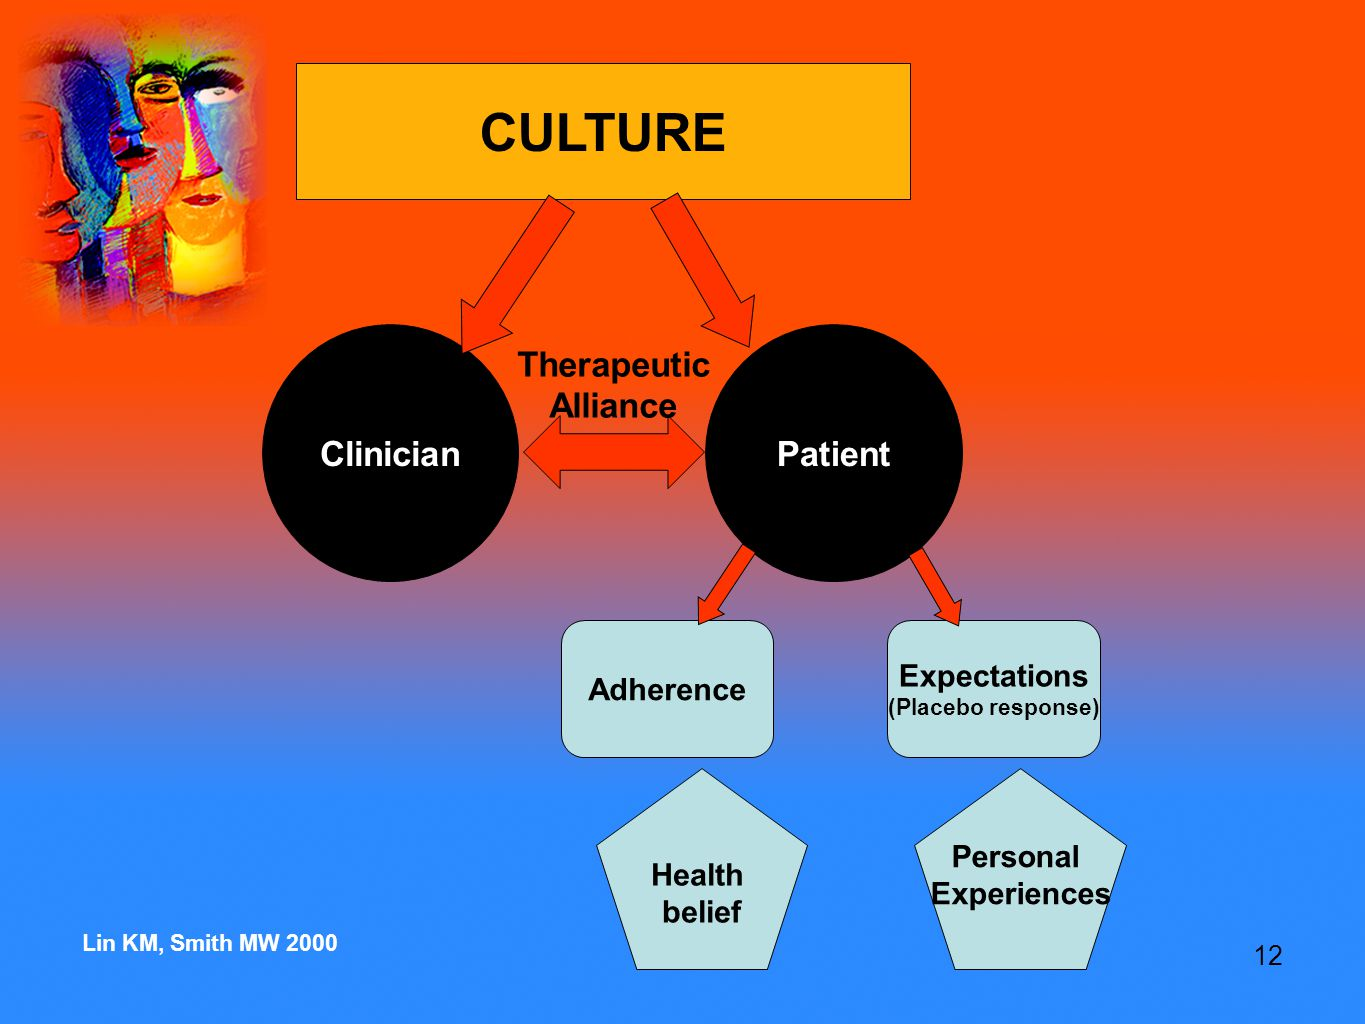 12 Expectations (Placebo response) ClinicianPatient Adherence CULTURE Therapeutic Alliance Health belief Personal Experiences Lin KM, Smith MW 2000